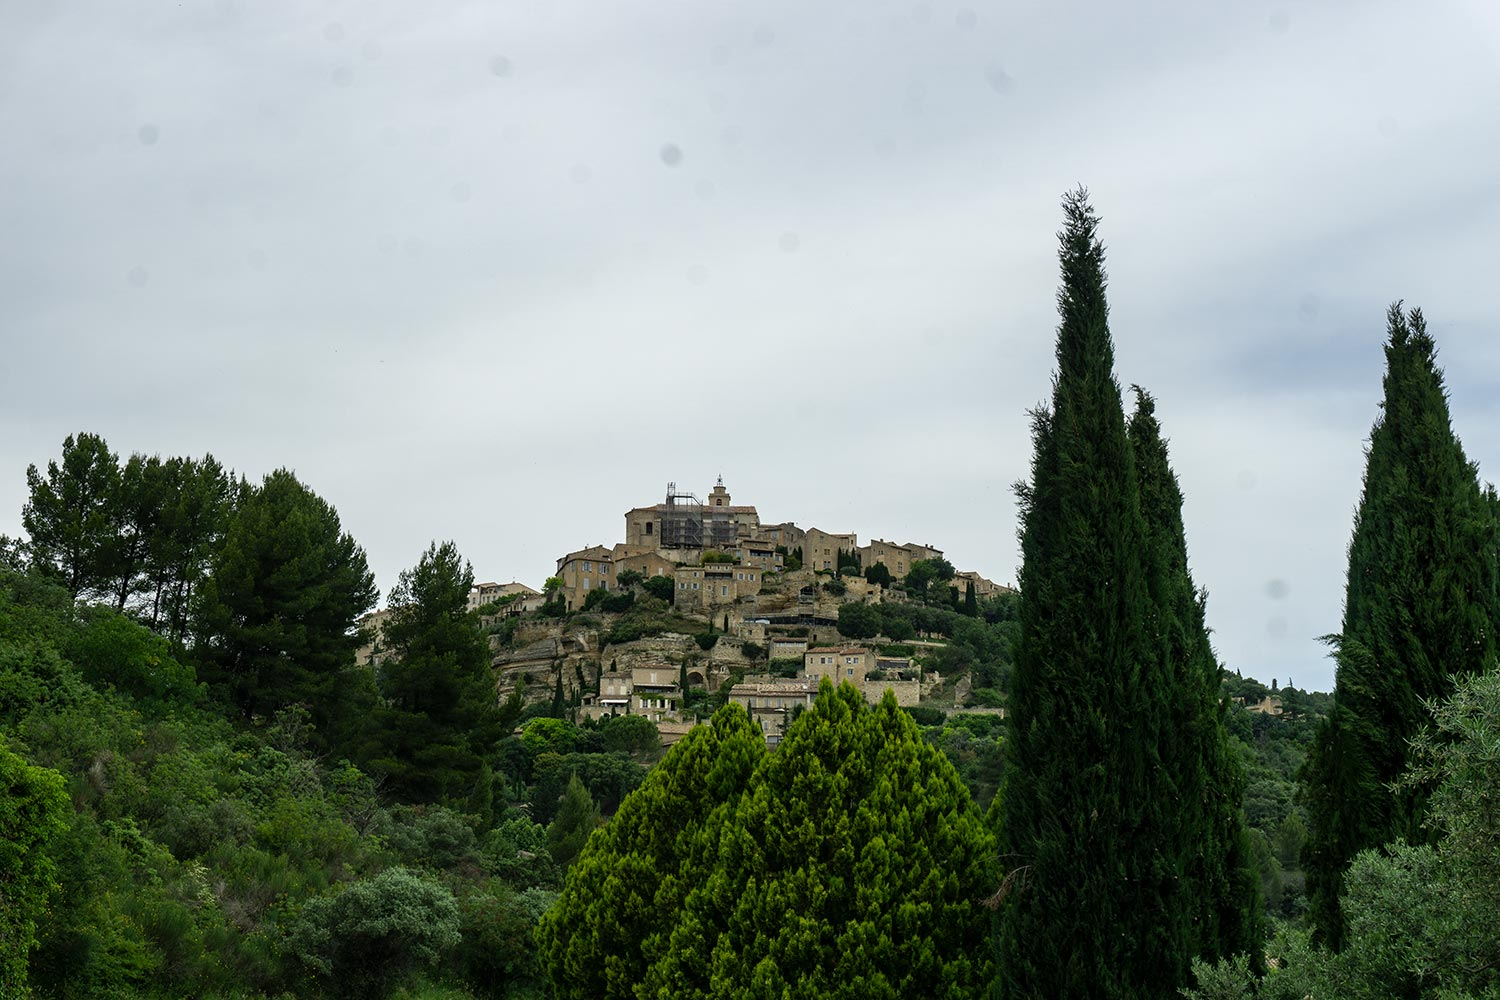 The town of Gordes in Provence, France on a hill as seen from a distance.